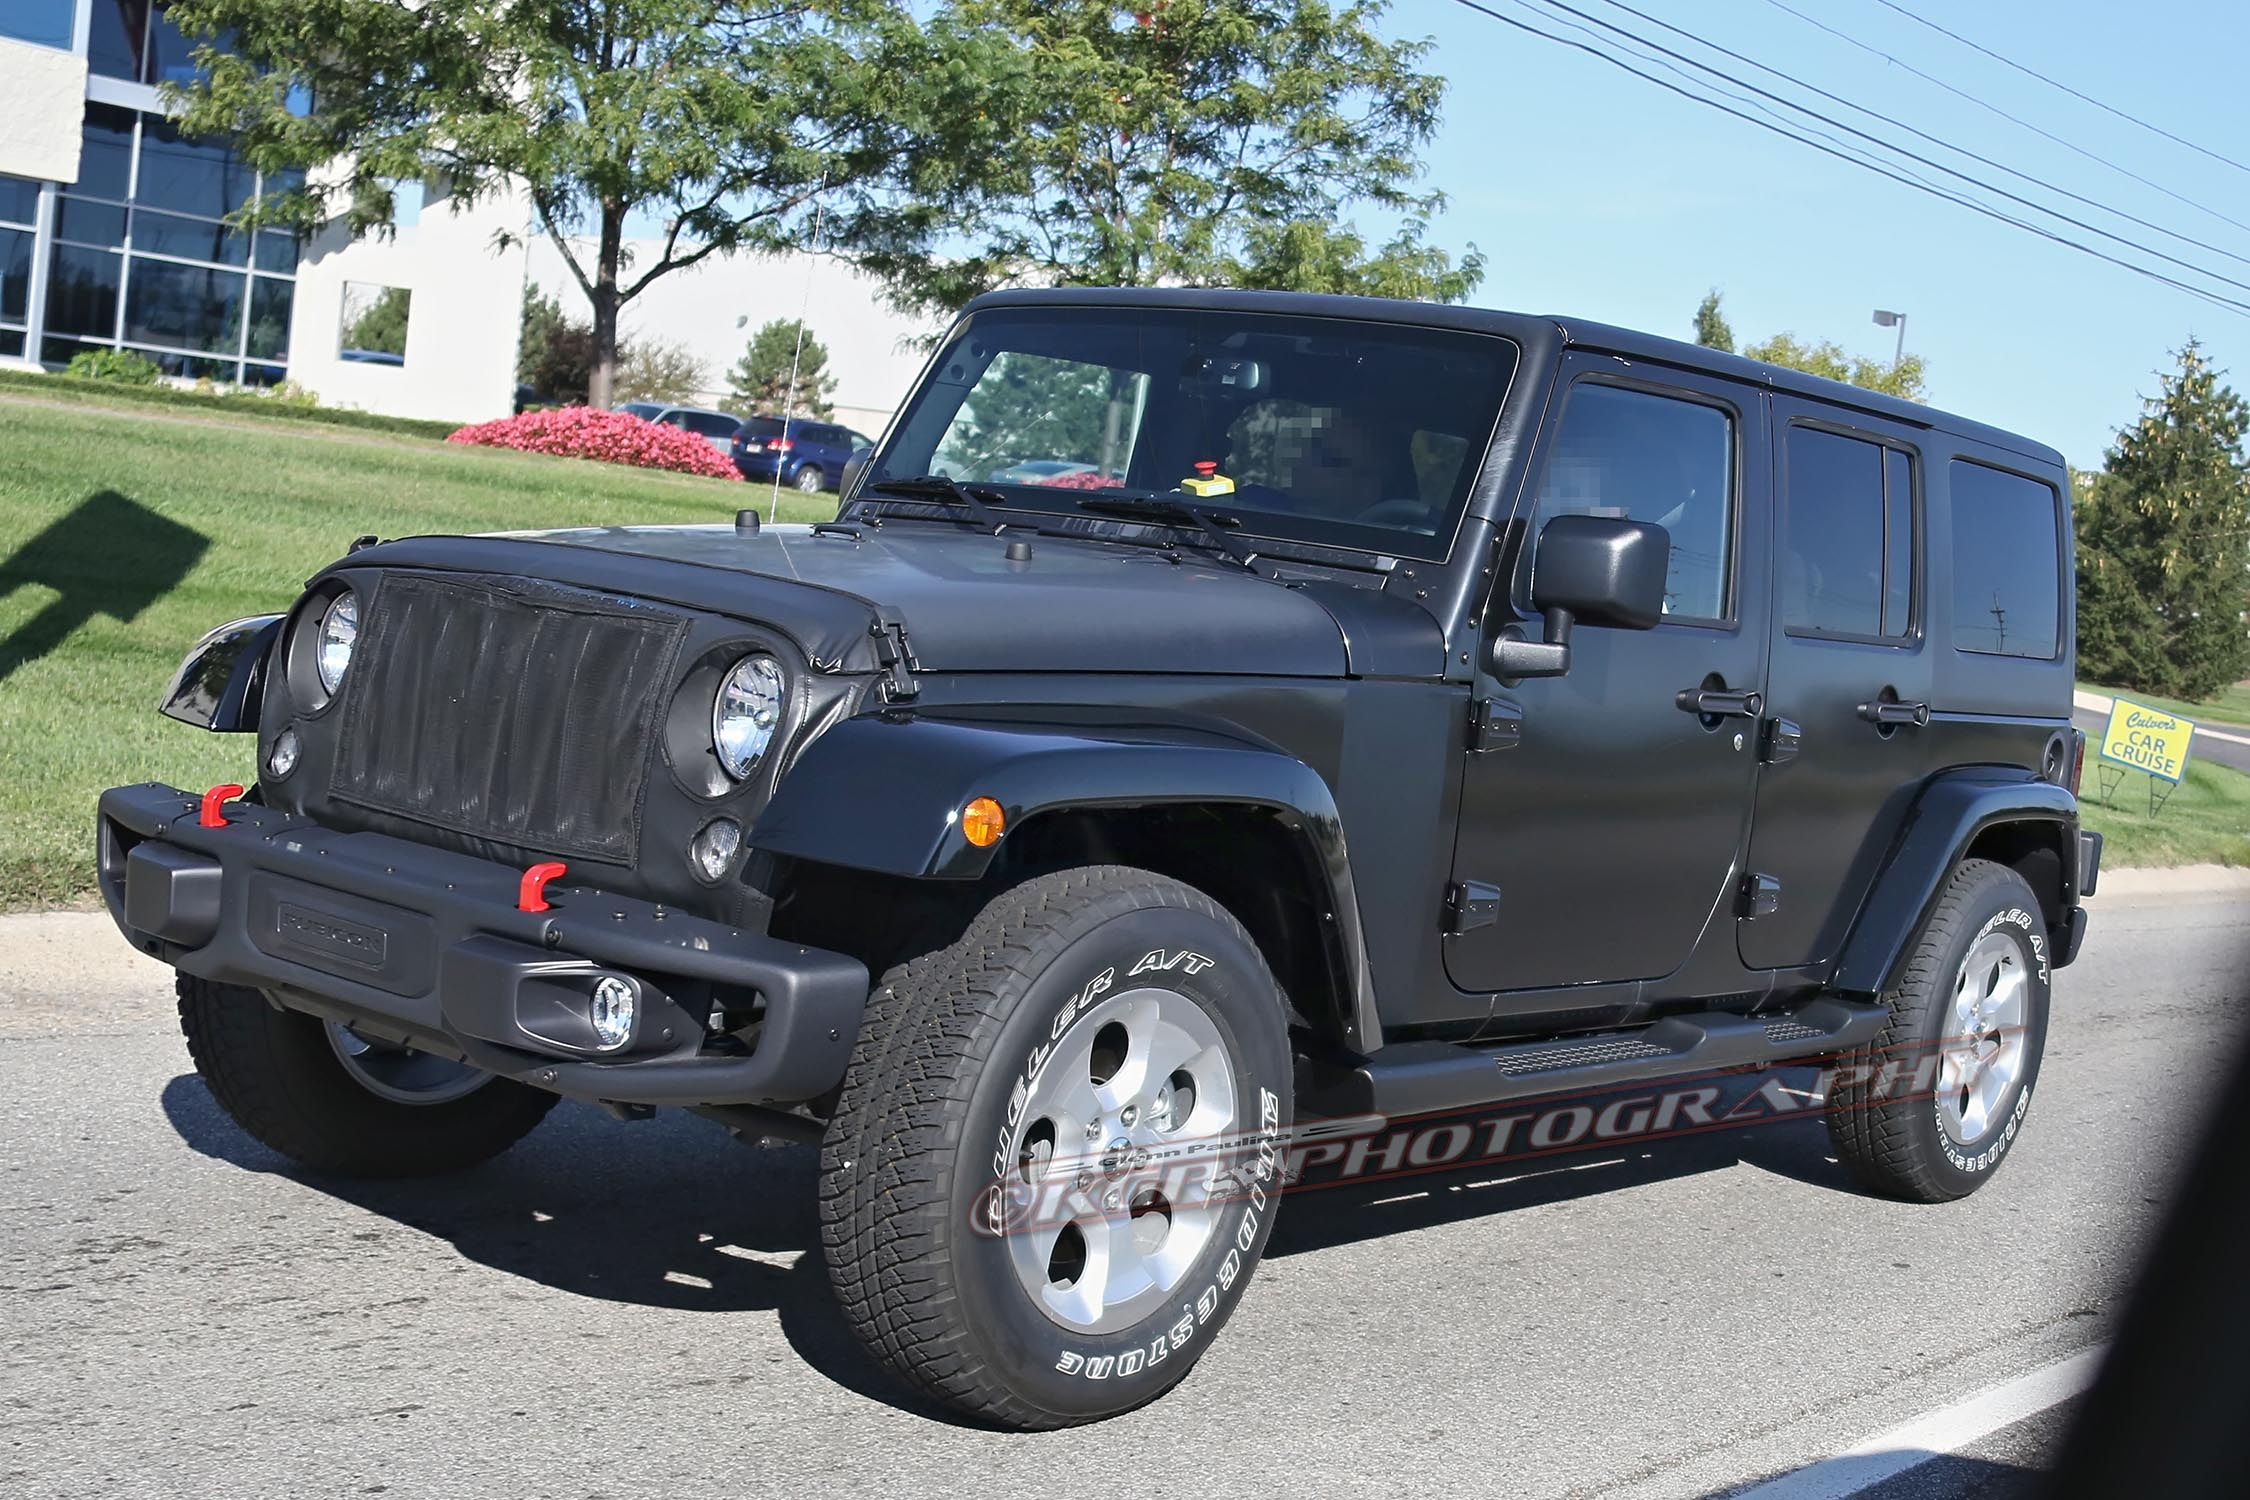 2018 Jeep Wrangler Prototype Spied With Body Suspension Modifications Front Sway Bar Diagram Free Image About Wiring Show More